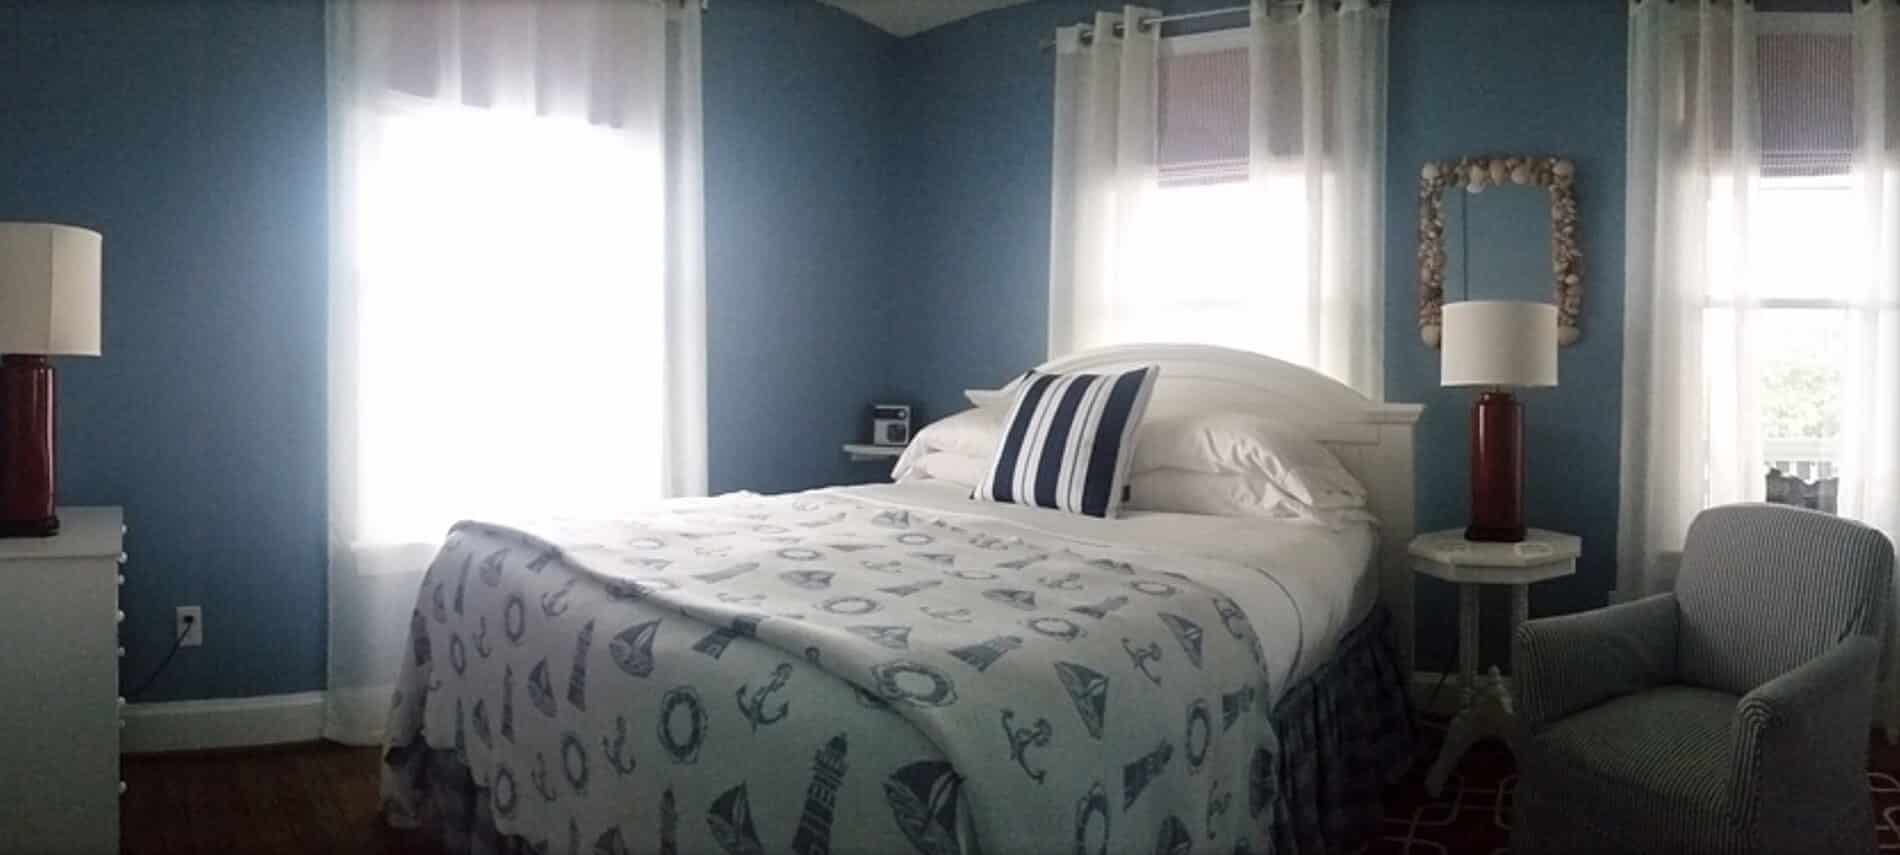 A bed made up in white and blue nautical bedding next to a nightstand with a light and an armchair.